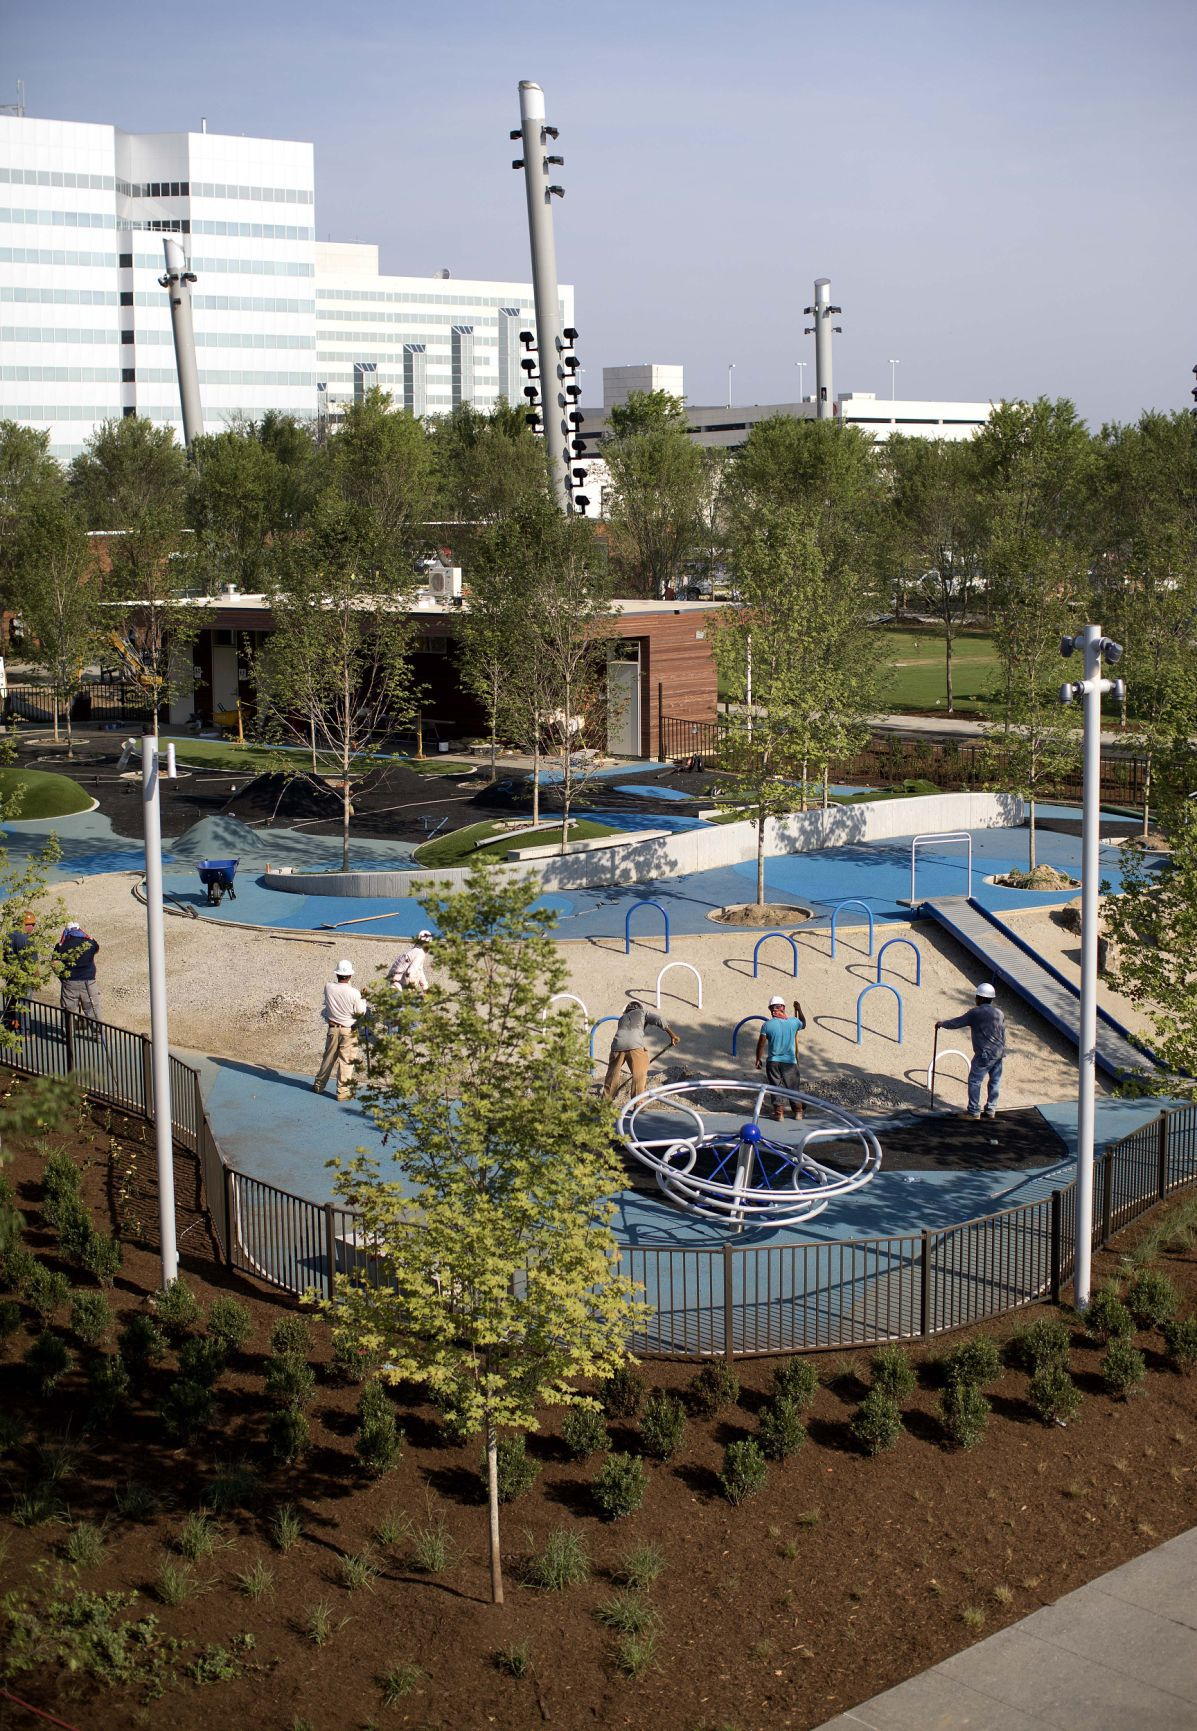 Find out why designer calls LeBauer Park